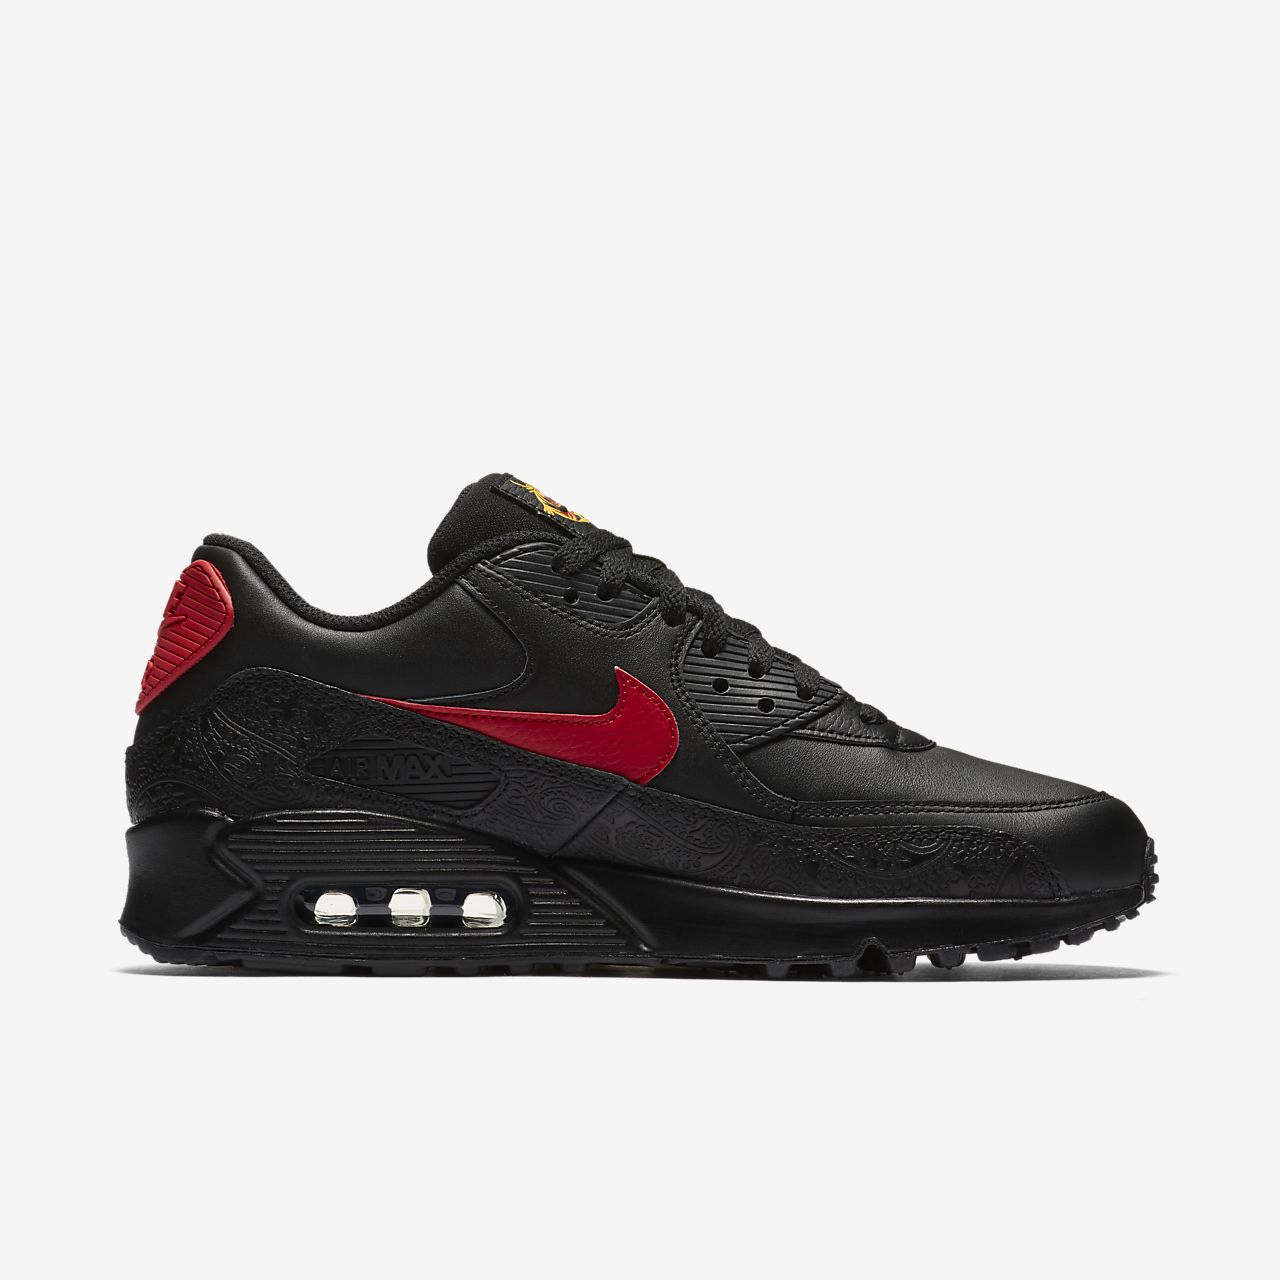 Mens Air Max 90 vente grand escompte HlyYs6806